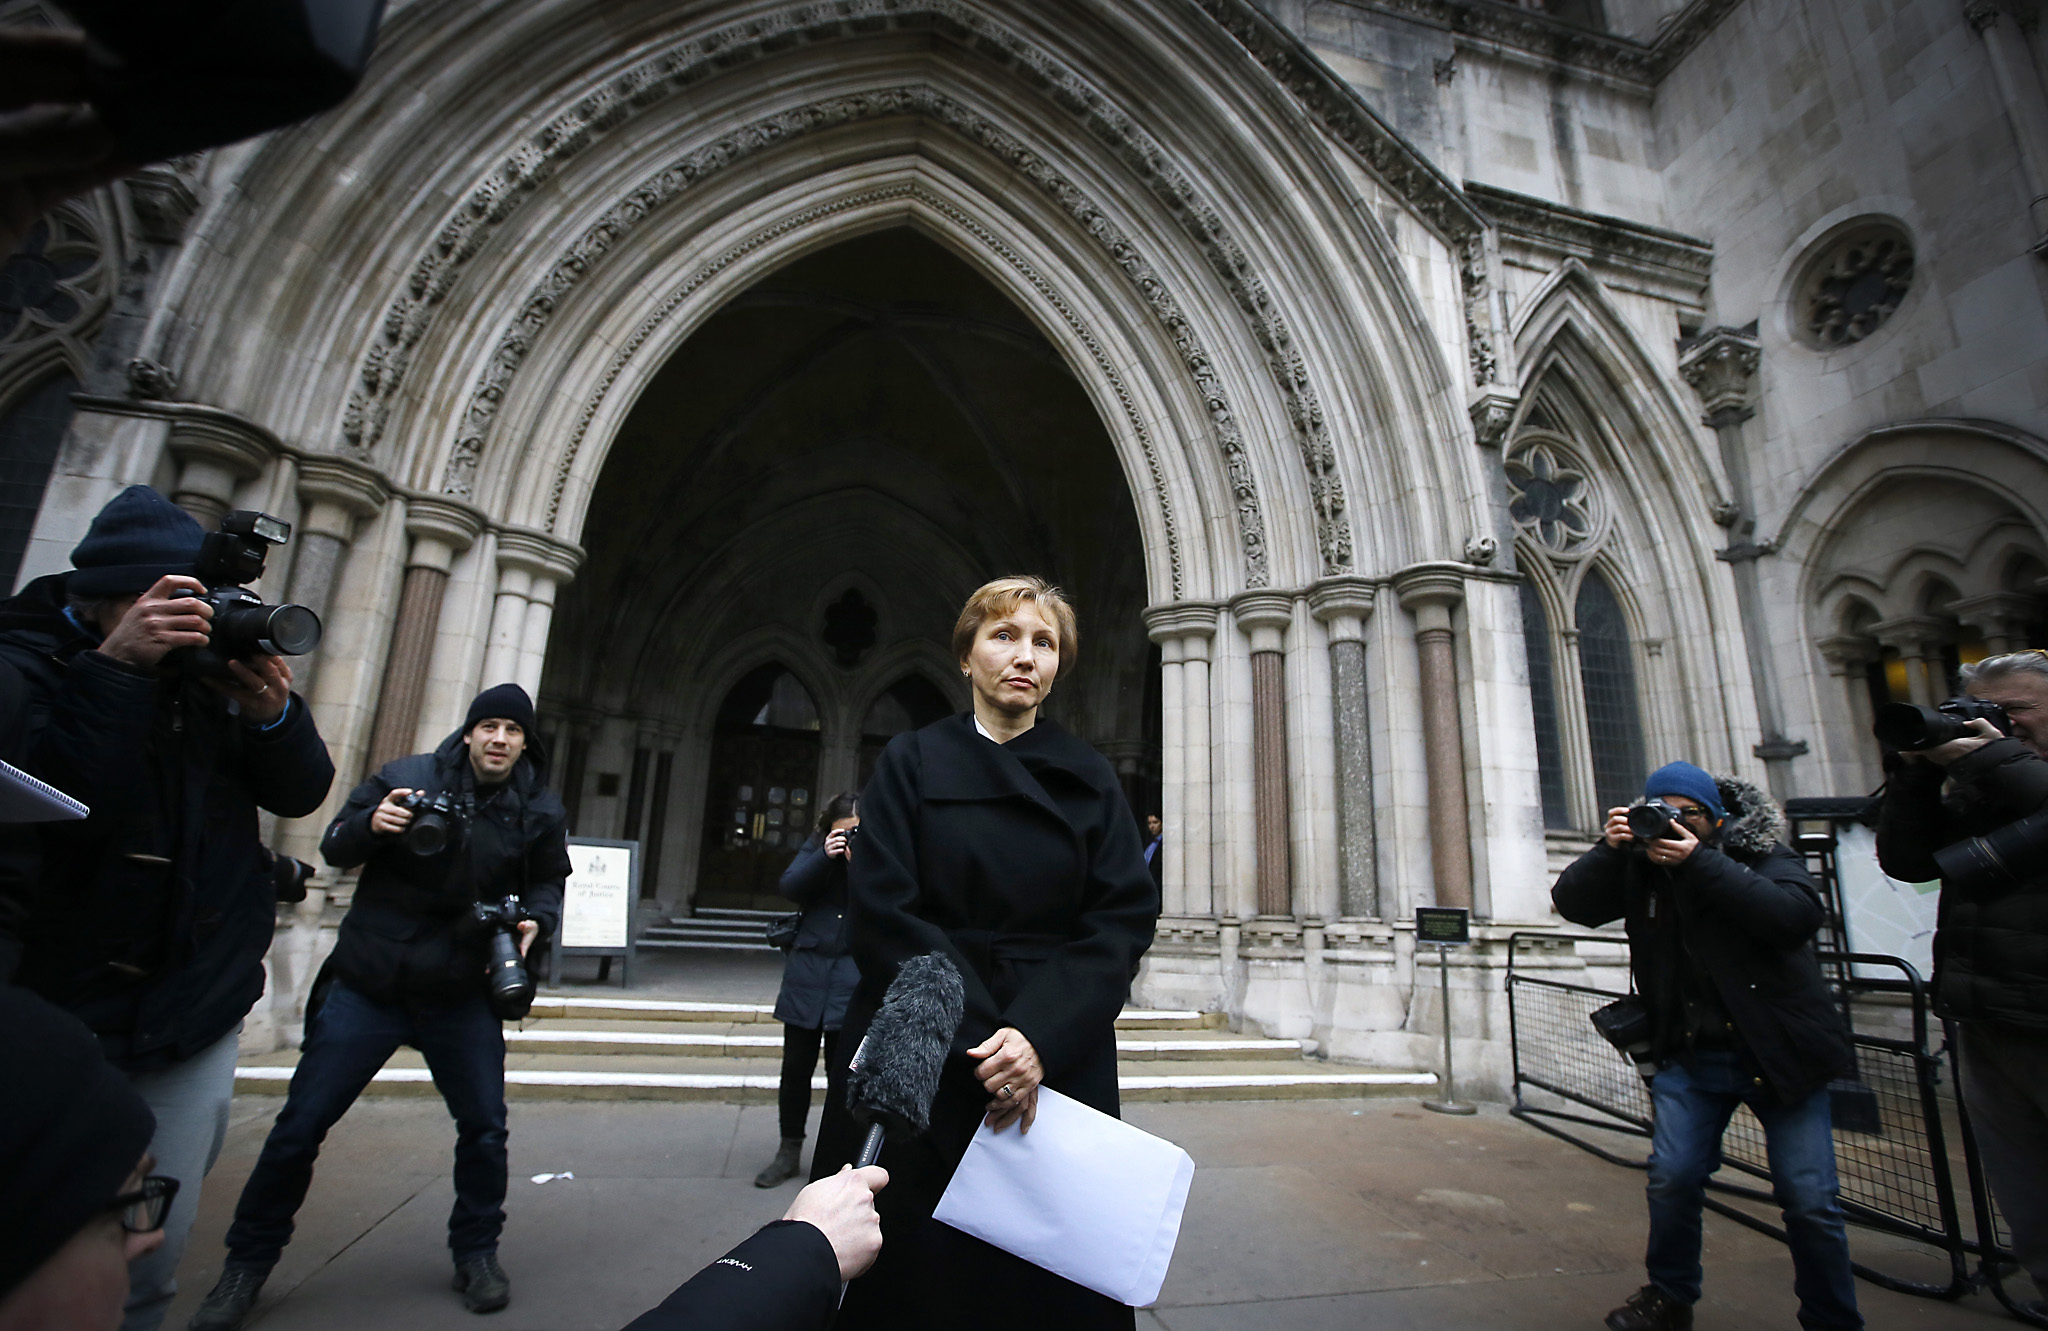 Marina Litvinenko, widow of former Russian spy Alexander Litvinenko, reads a statement outside the Royal Courts of Justice in London, Thursday, Jan. 21, 2016. British judge Robert Owen is set to release Thursday the findings of a lengthy public inquiry into the 2006 poisoning death of former Russian spy Alexander Litvinenko. One day in 2006, Litvinenko a former KGB agent who claimed to know dark Kremlin secrets had tea with two Russian men at the hotel. Three weeks later, he died of radioactive poisoning ó after making a deathbed claim that Russian President Vladimir Putin had ordered his killing. (AP Photo/Kirsty Wigglesworth)